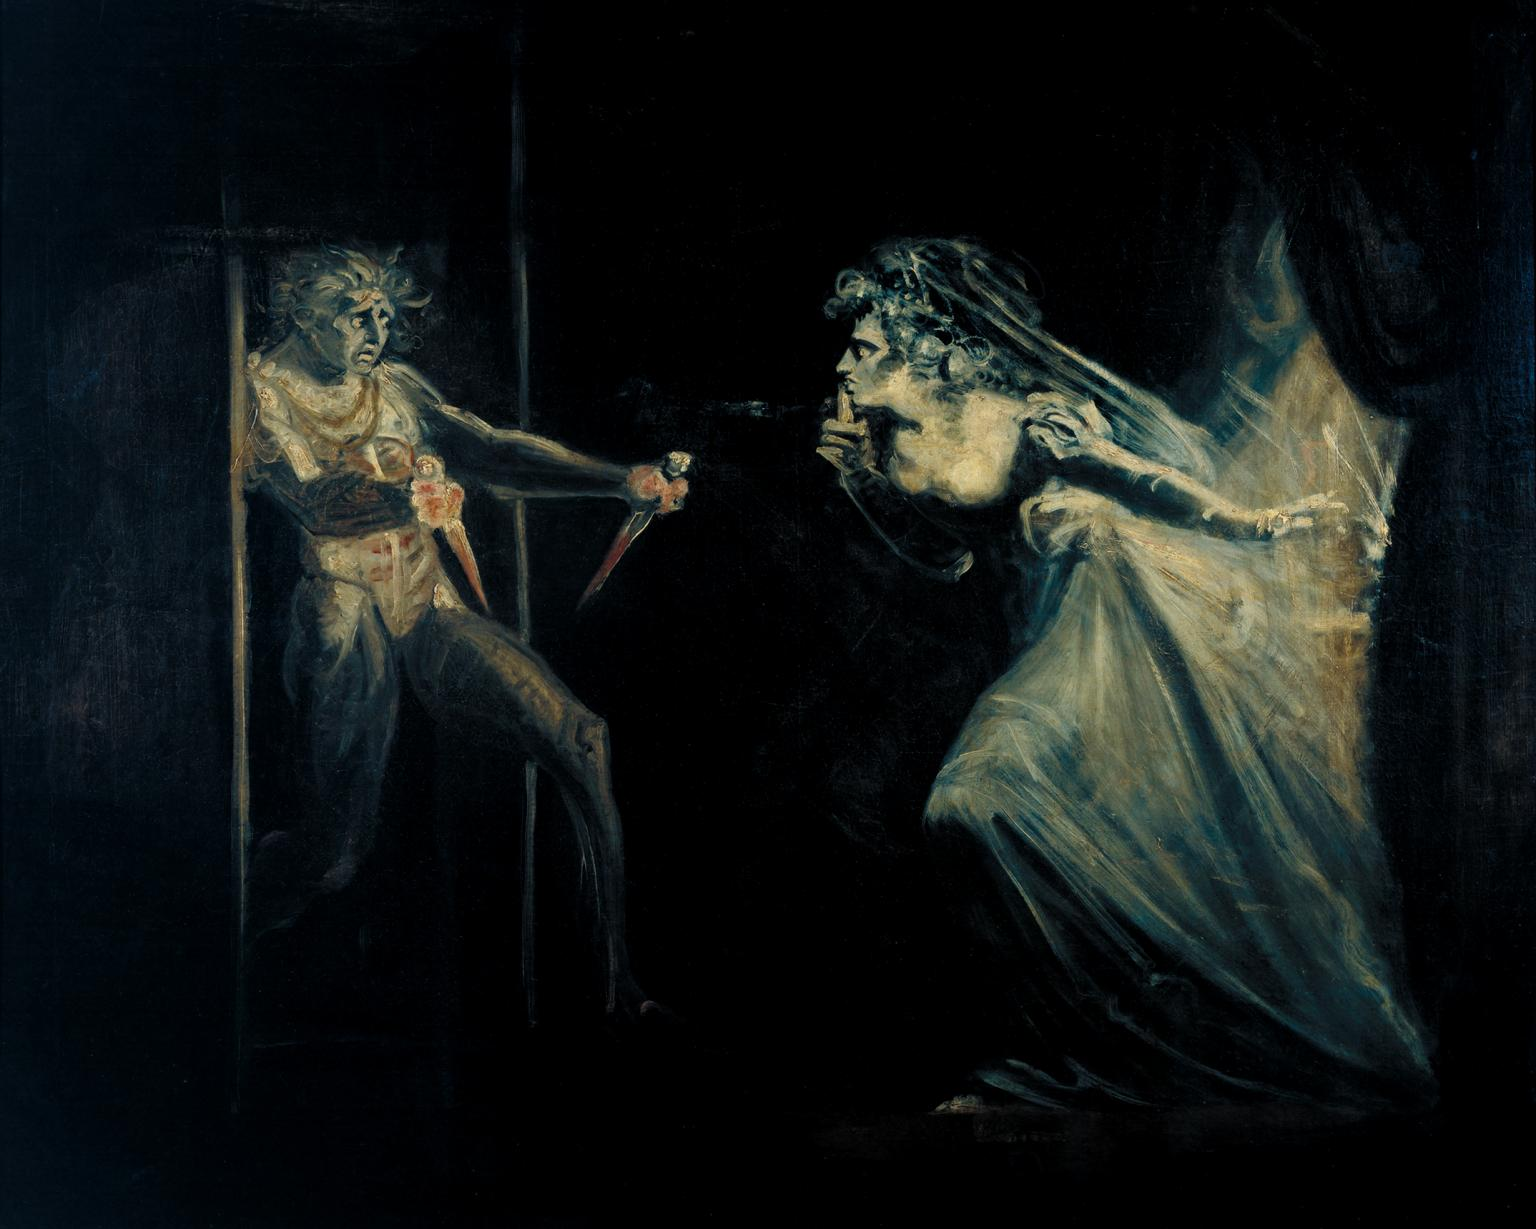 fuseli, henry, macbeth, lady macbeth, painting, gothic